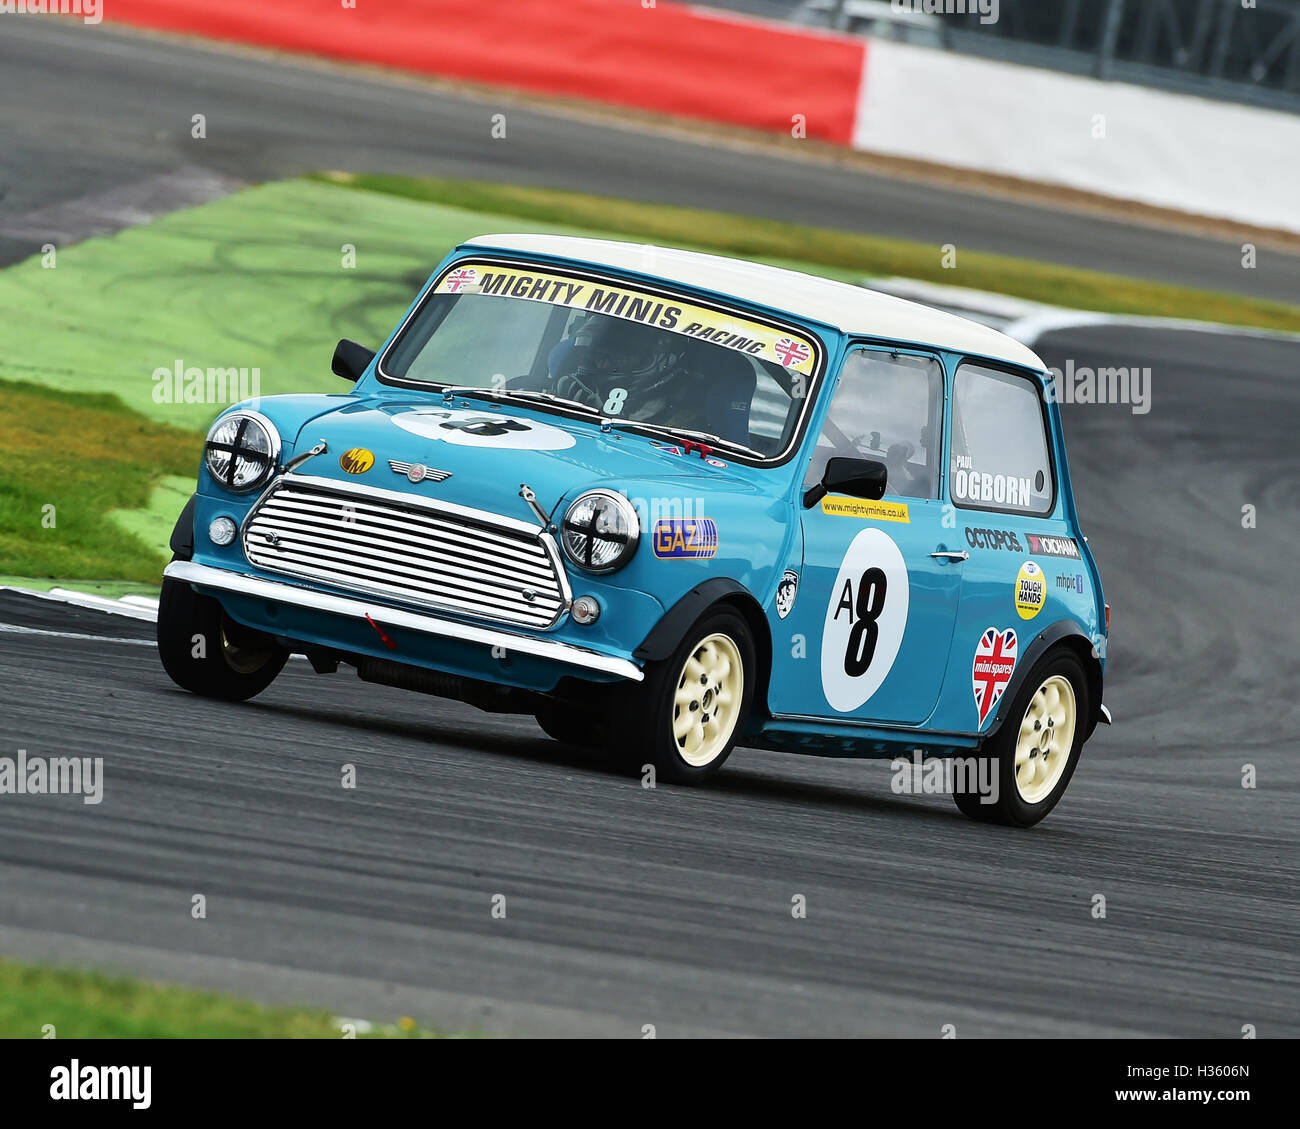 Paul Ogborn, Mighty Mini, 1275, Mighty Mini Championship, Saturday, Silverstone, Silverstone truck festival, Saturday, - Stock Image